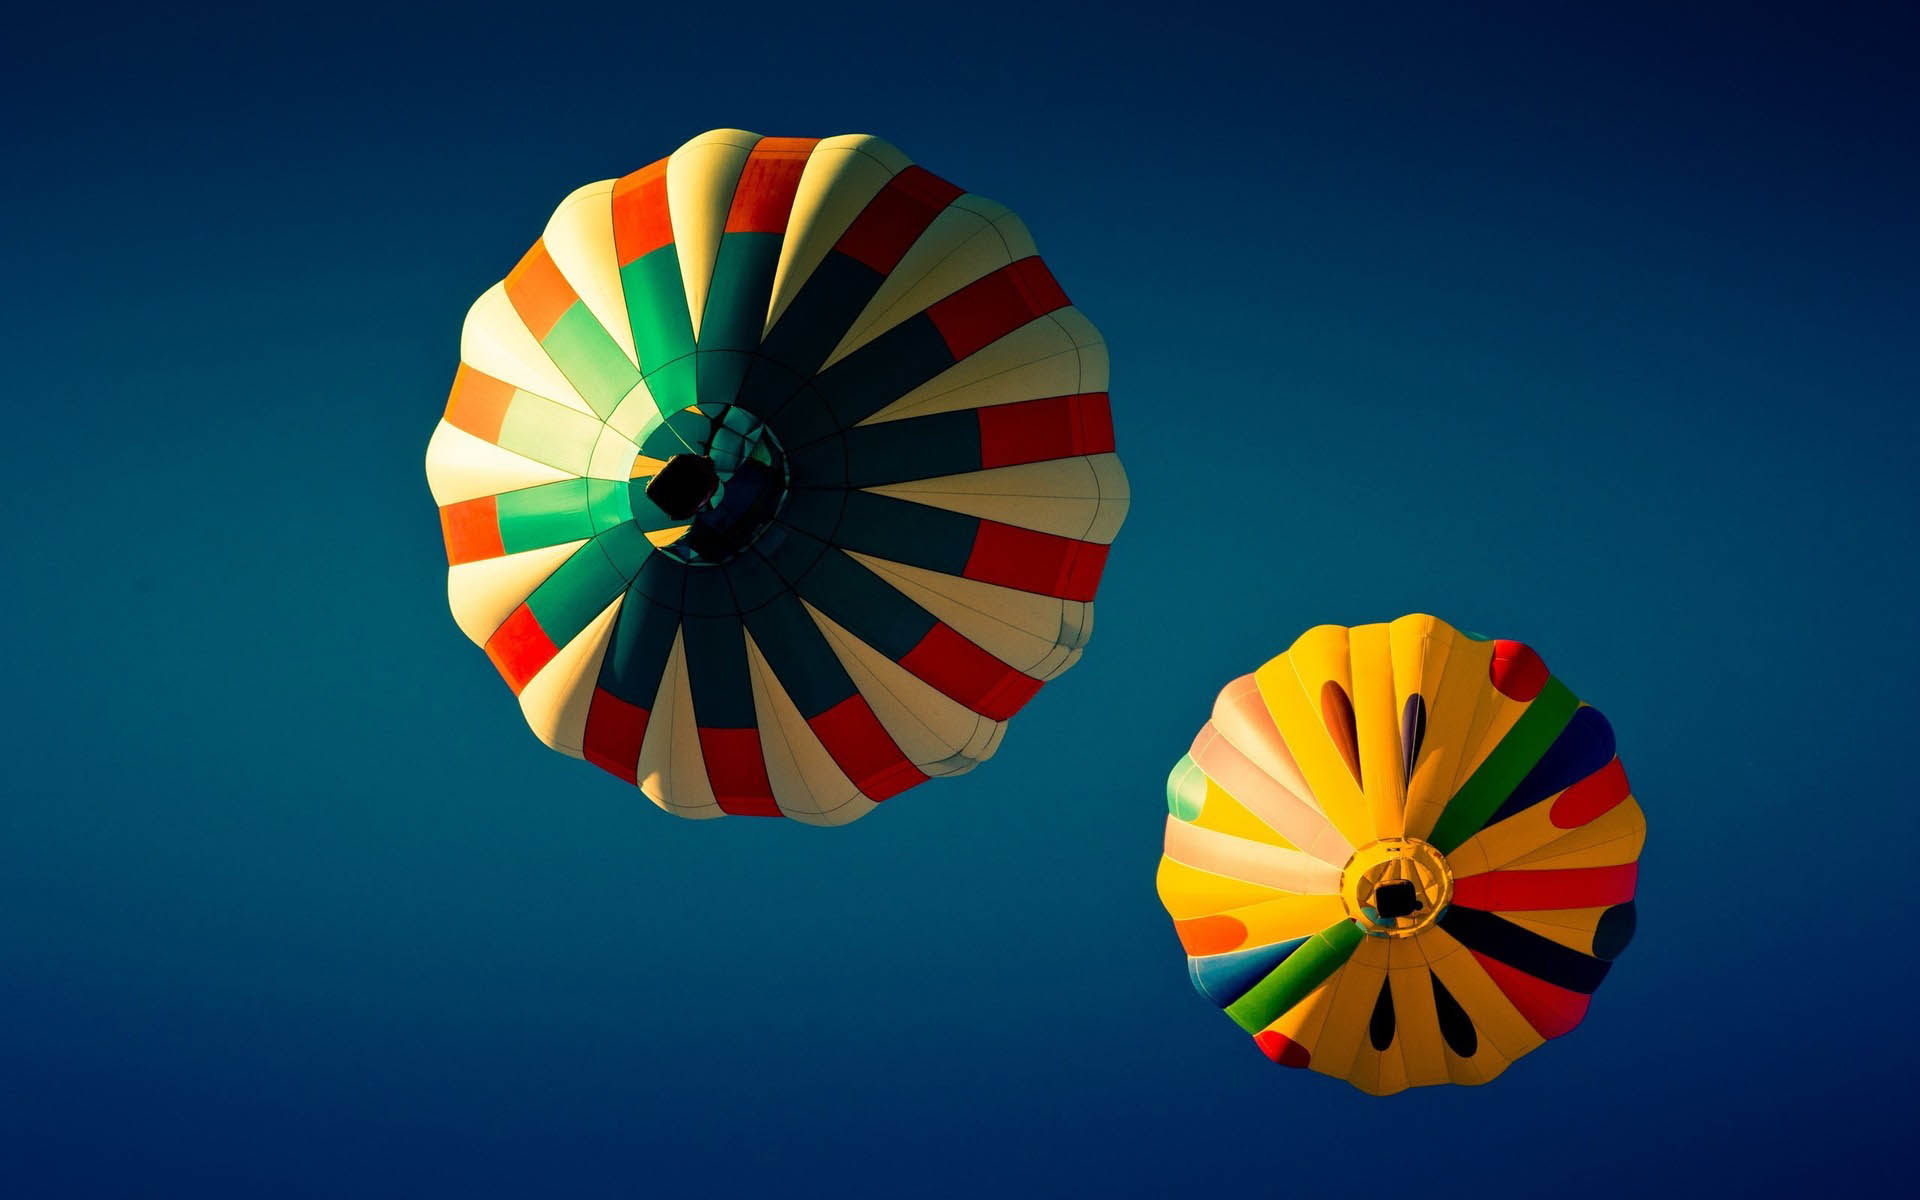 hot air balloons Hd New Wallpapers Download HD Wallpapers 1920x1200